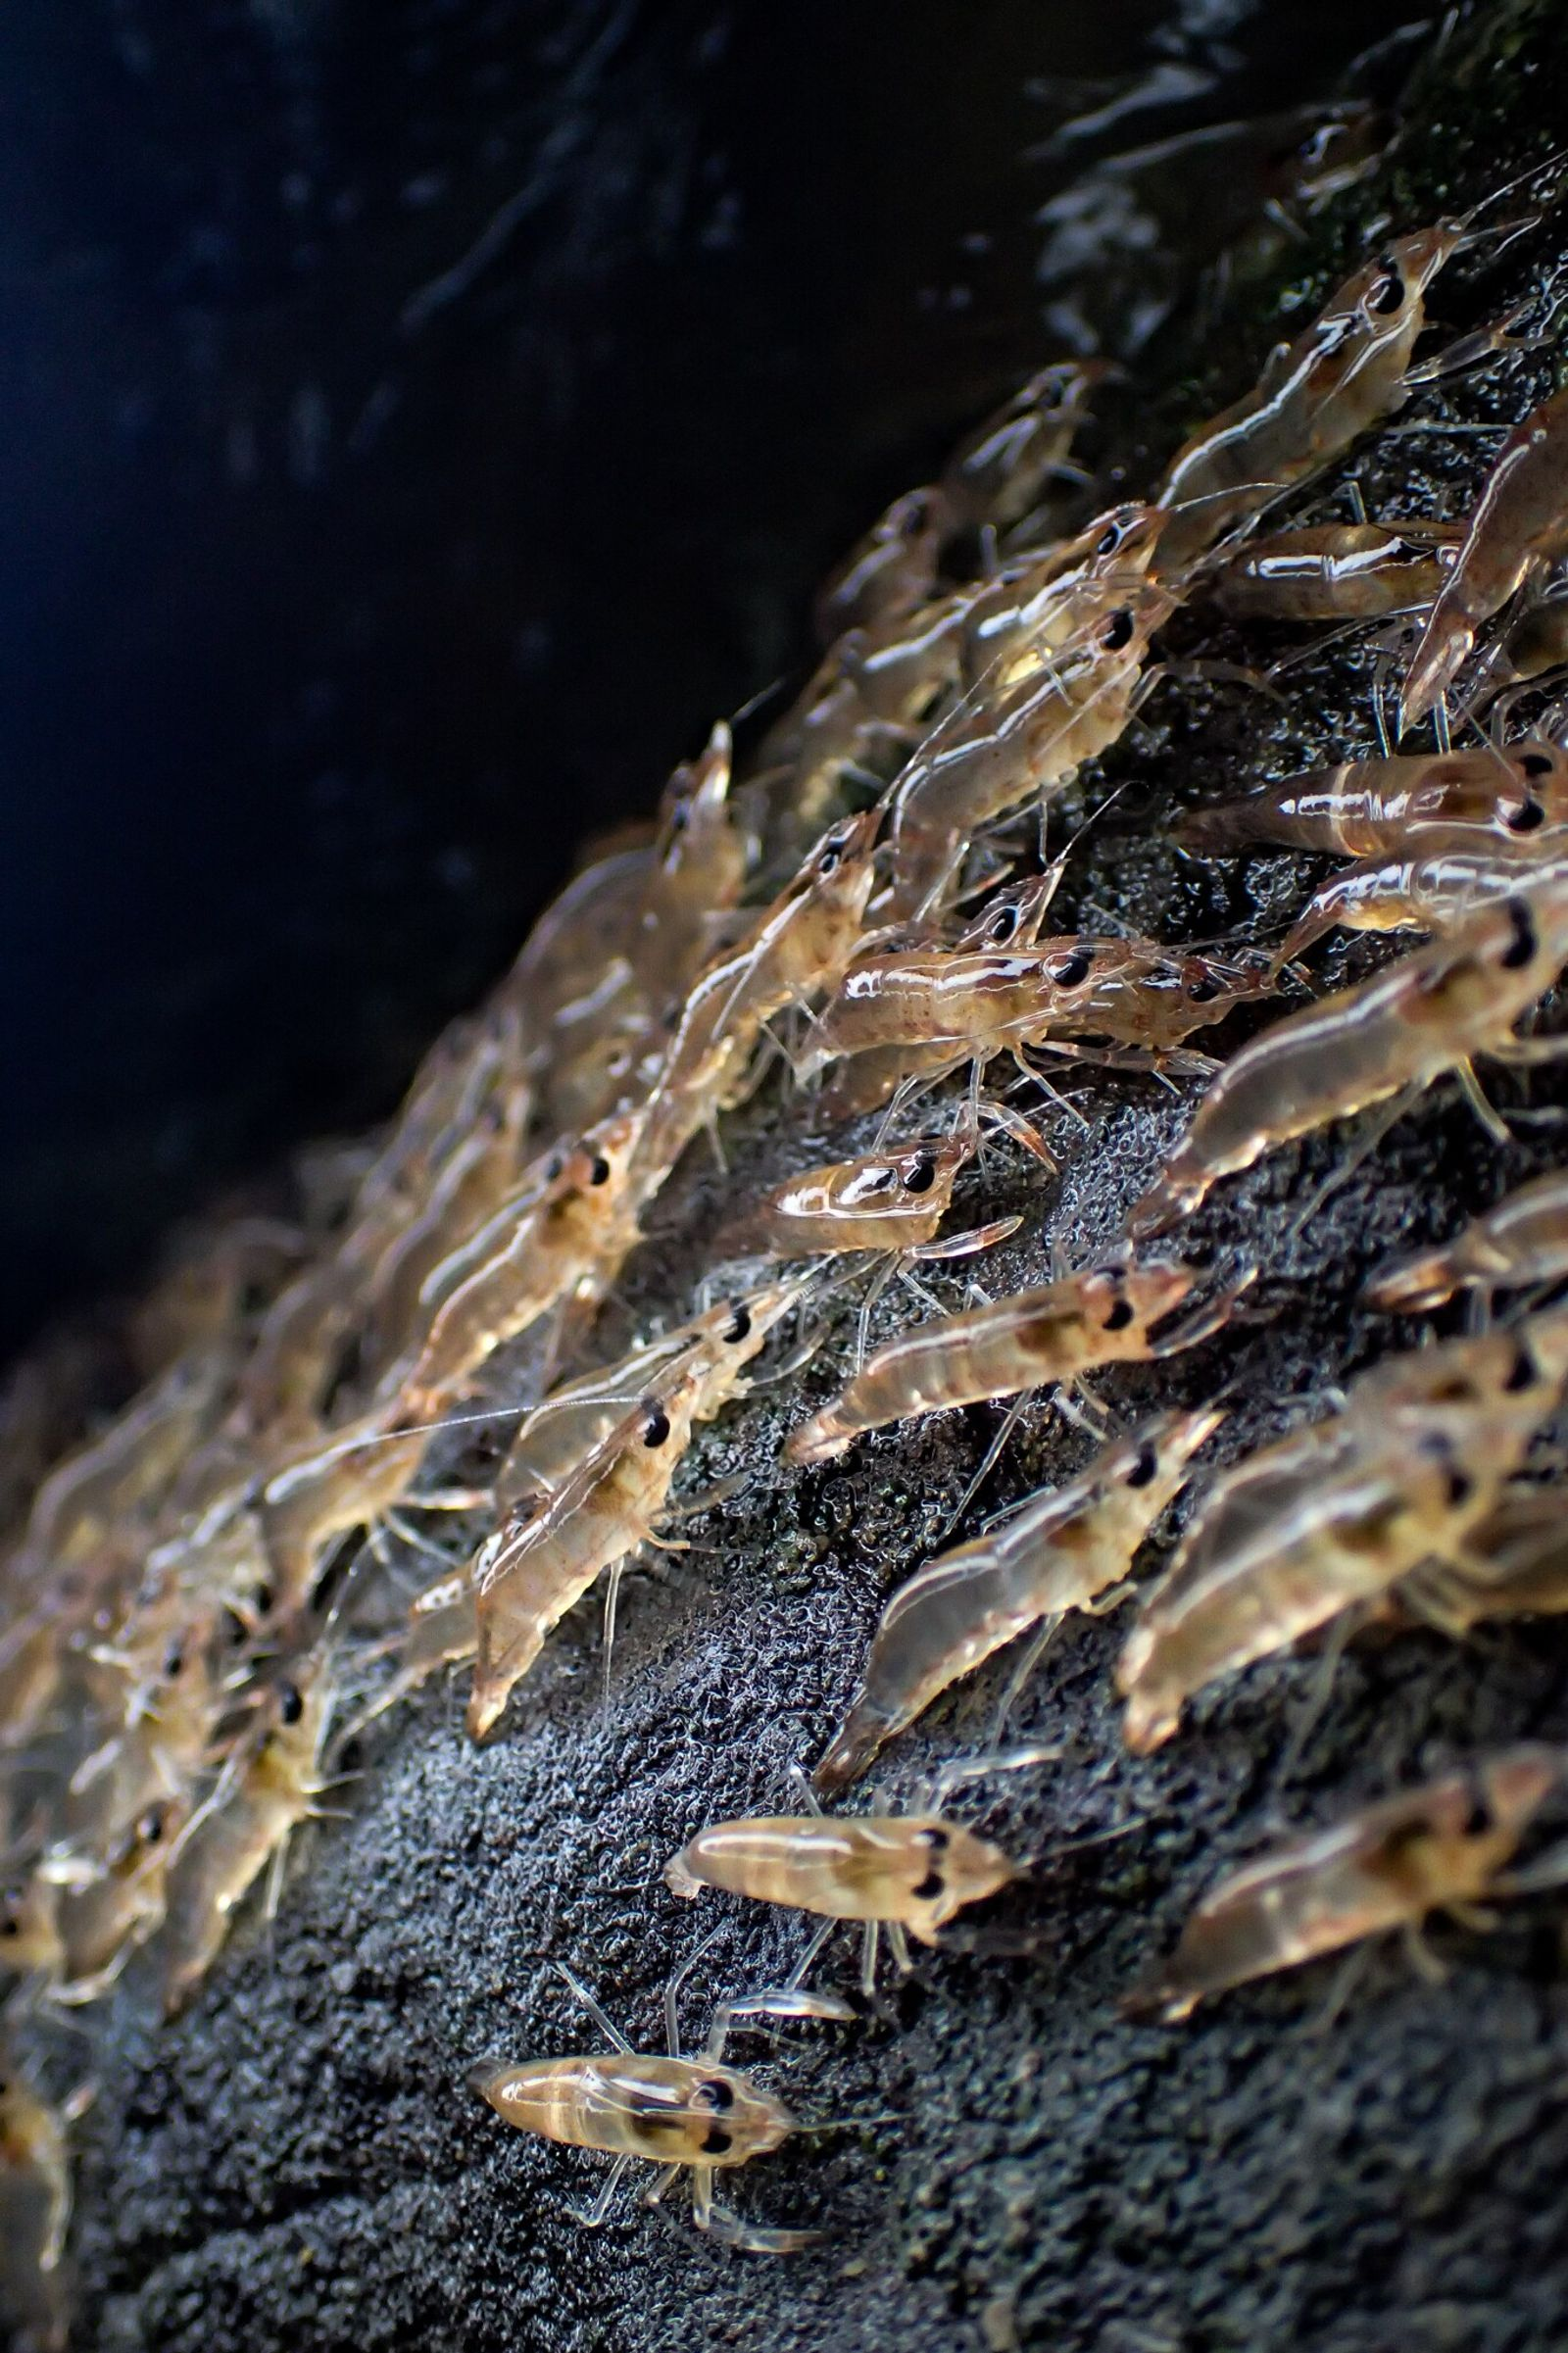 The thumbnail-size shrimp are highly vulnerable to predators during their nighttime marches.